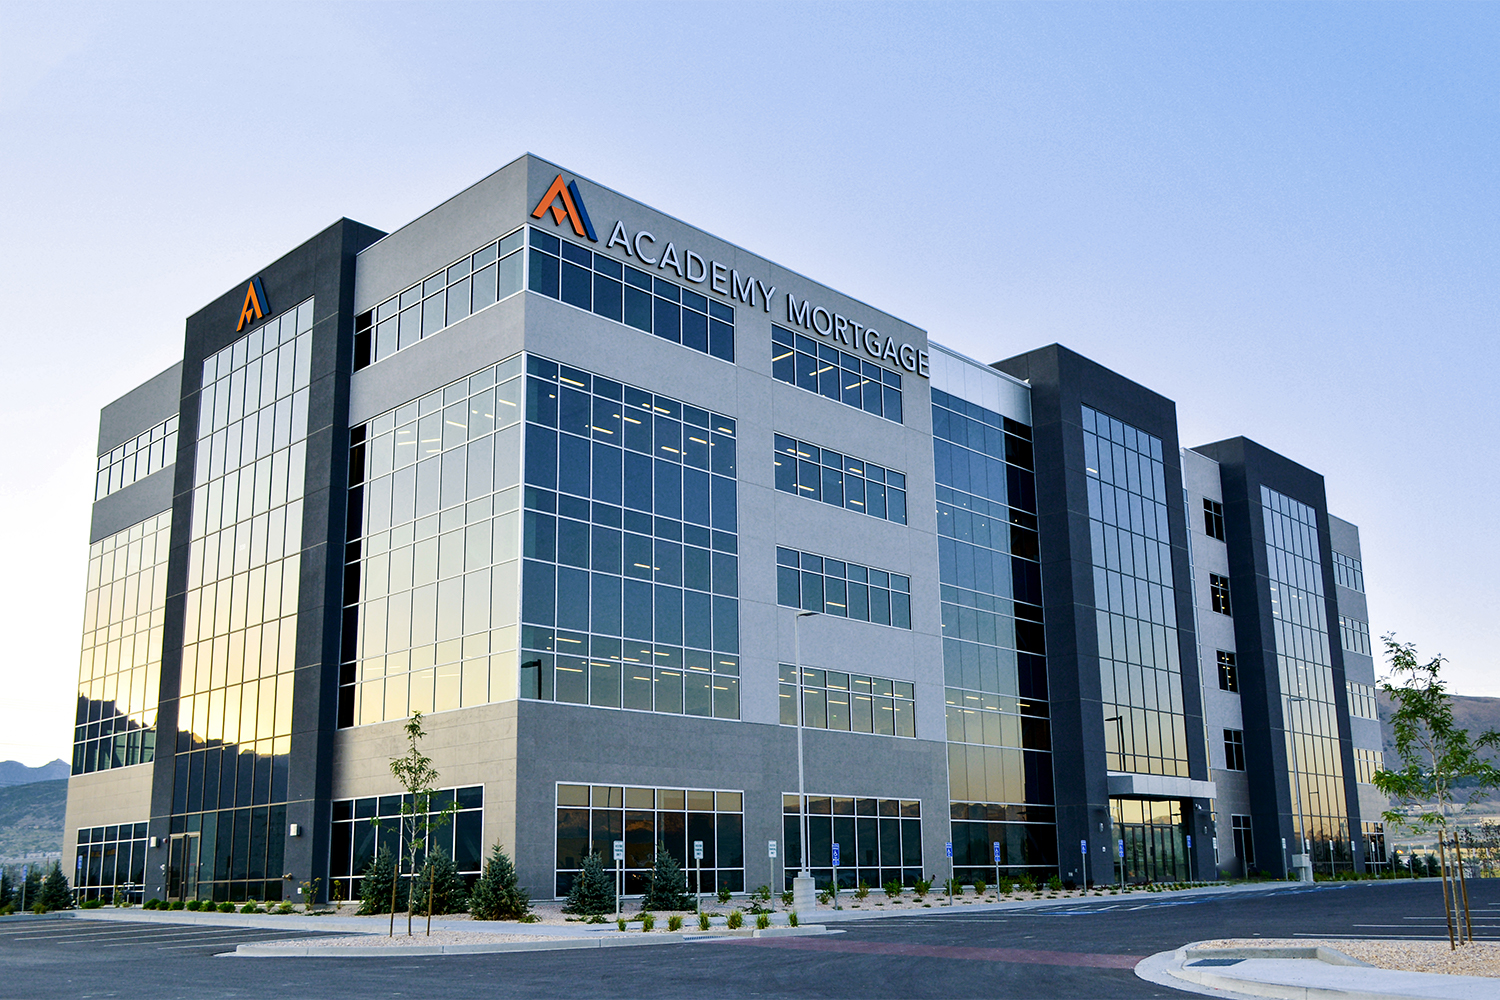 Academy Mortgage Headquarters